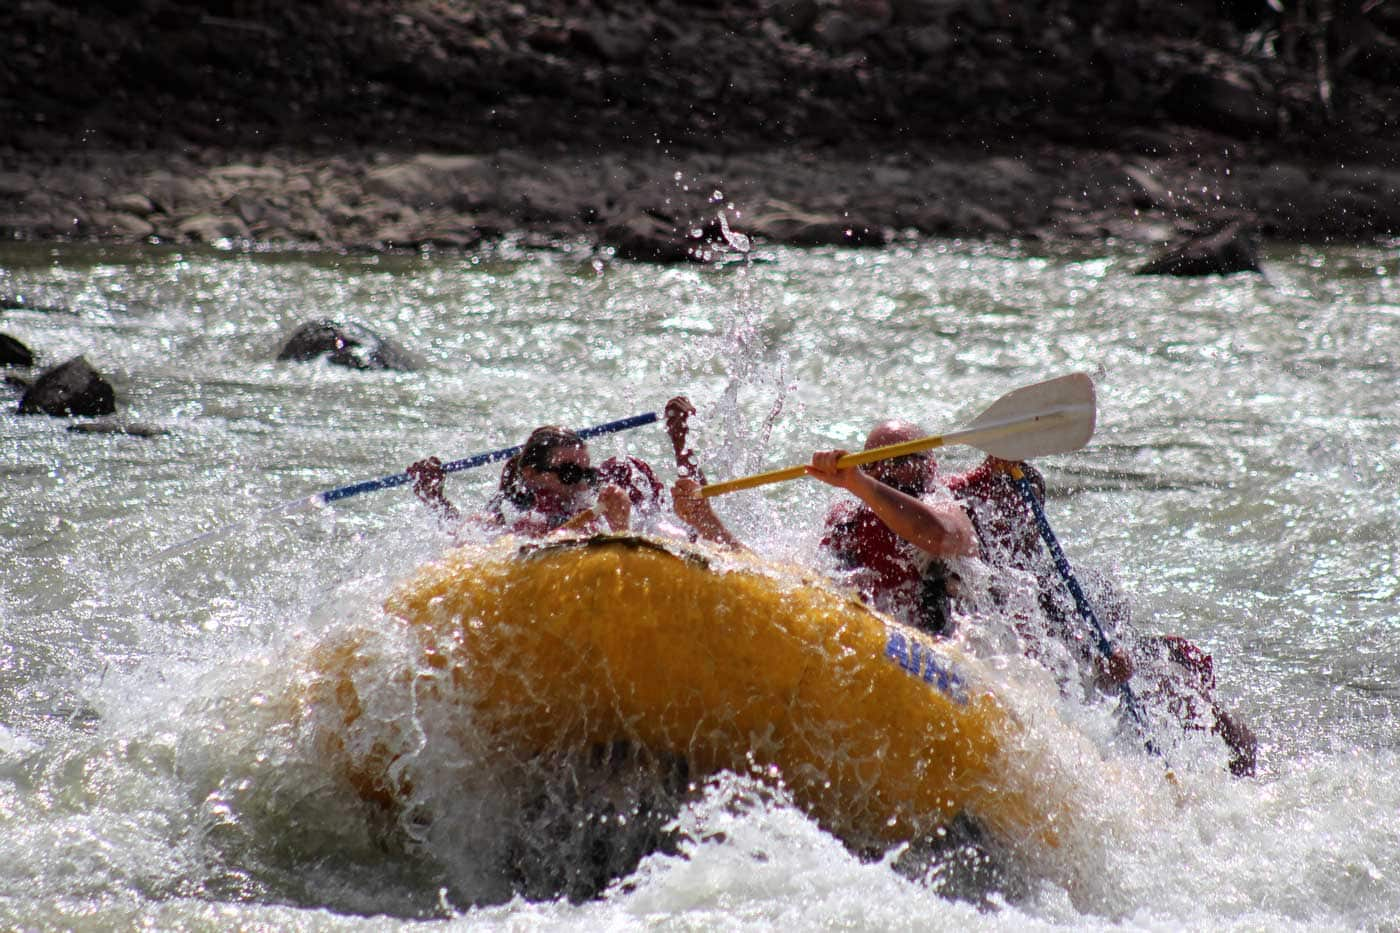 Getting Back on Whitewater - Hole